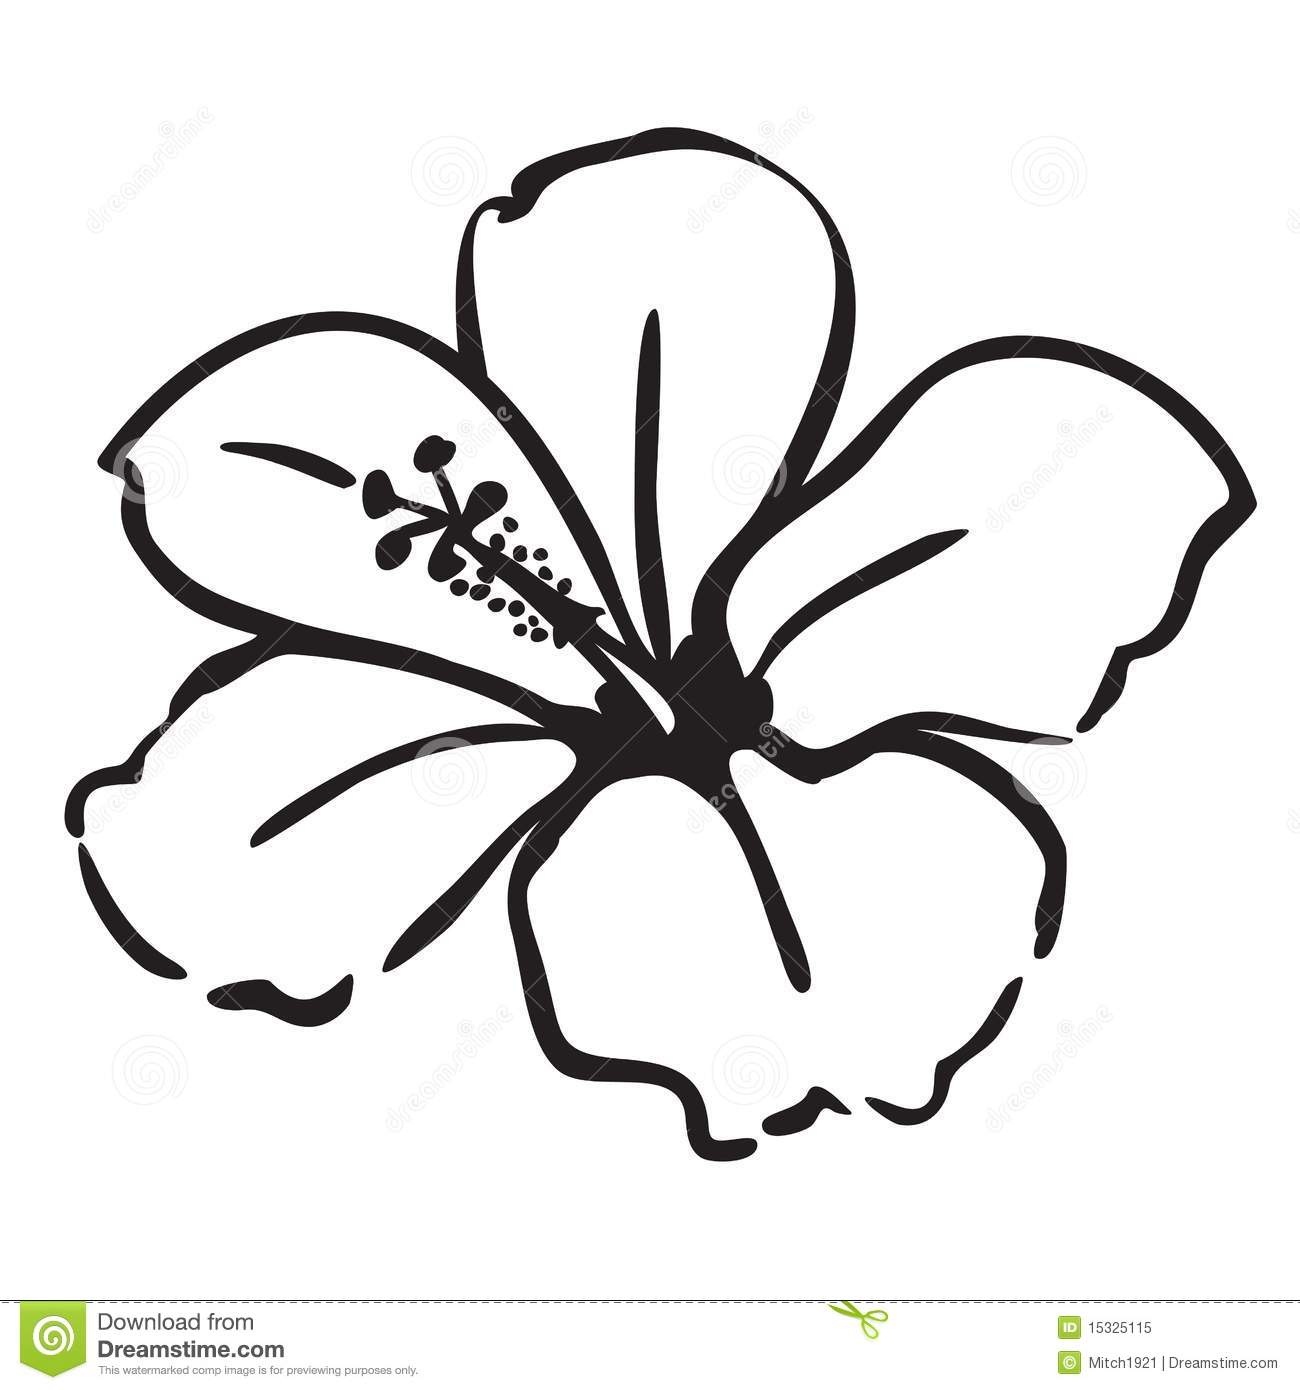 1000+ images about Flower drawings on Pinterest.